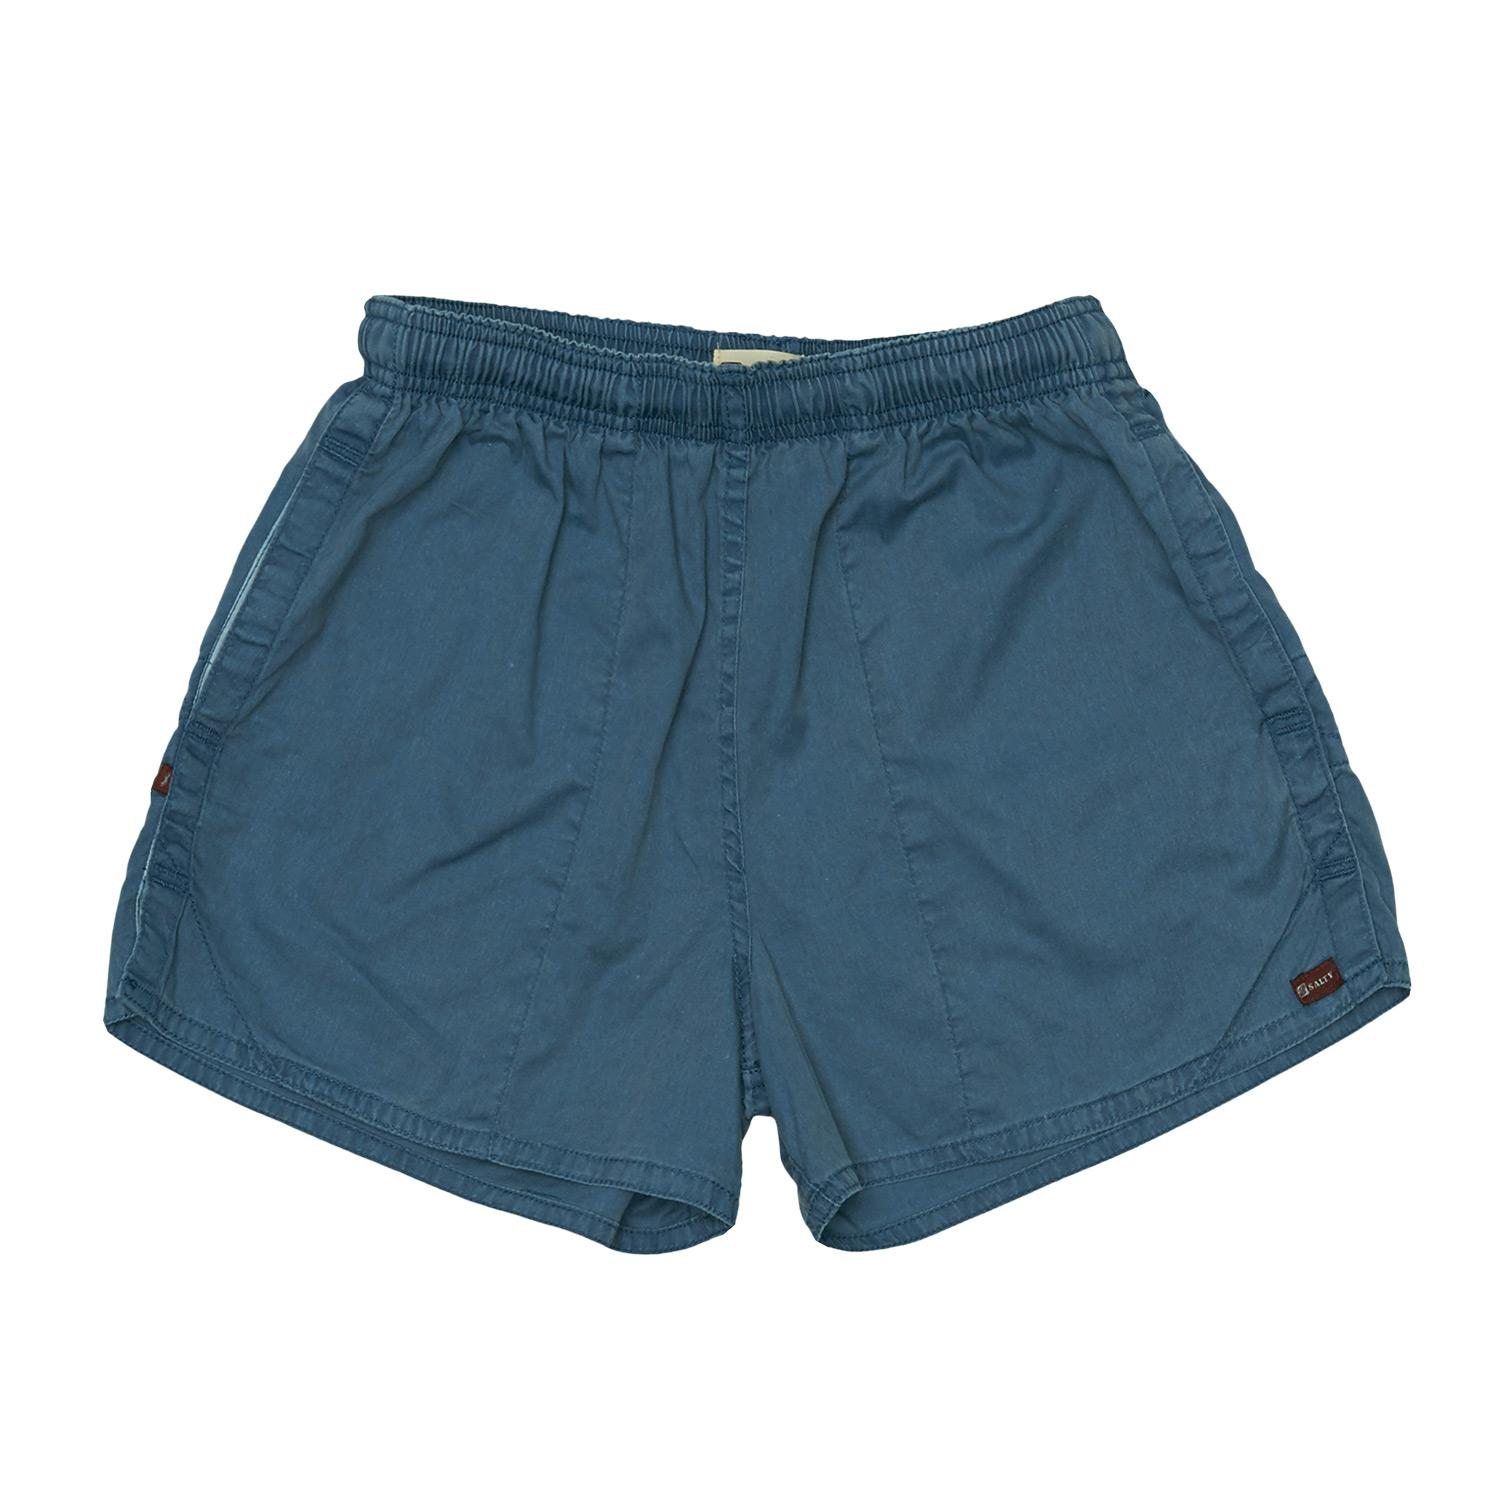 Salty Boys Cotton Rugby Shorts Navy/black/bottlegreen/white/olive/khaki/ablue/stone